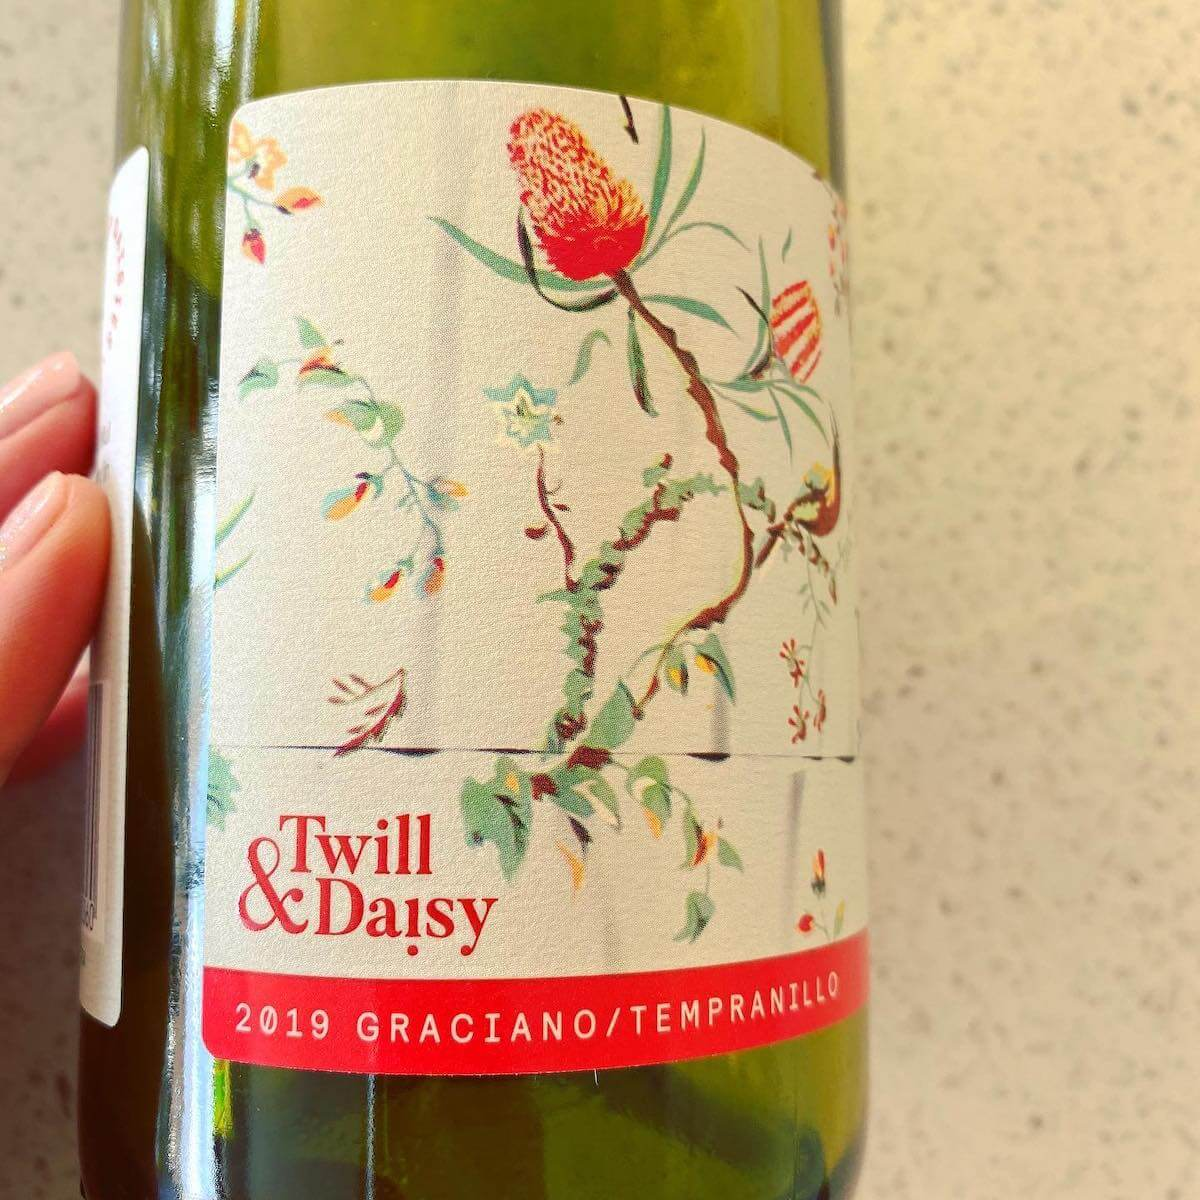 Twill and Daisy 2019 Graciano Tempranillo